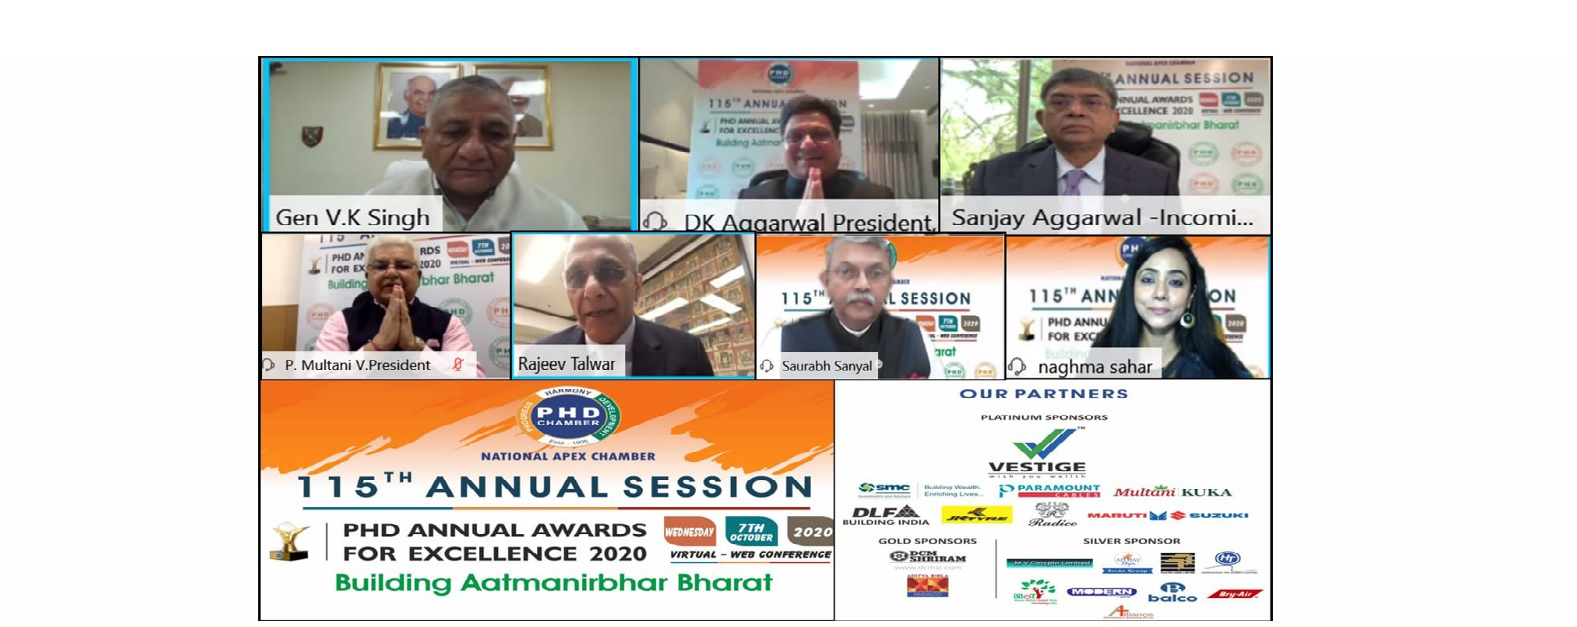 Inaugural Session and PHD Annual Awards for Excellence 2020